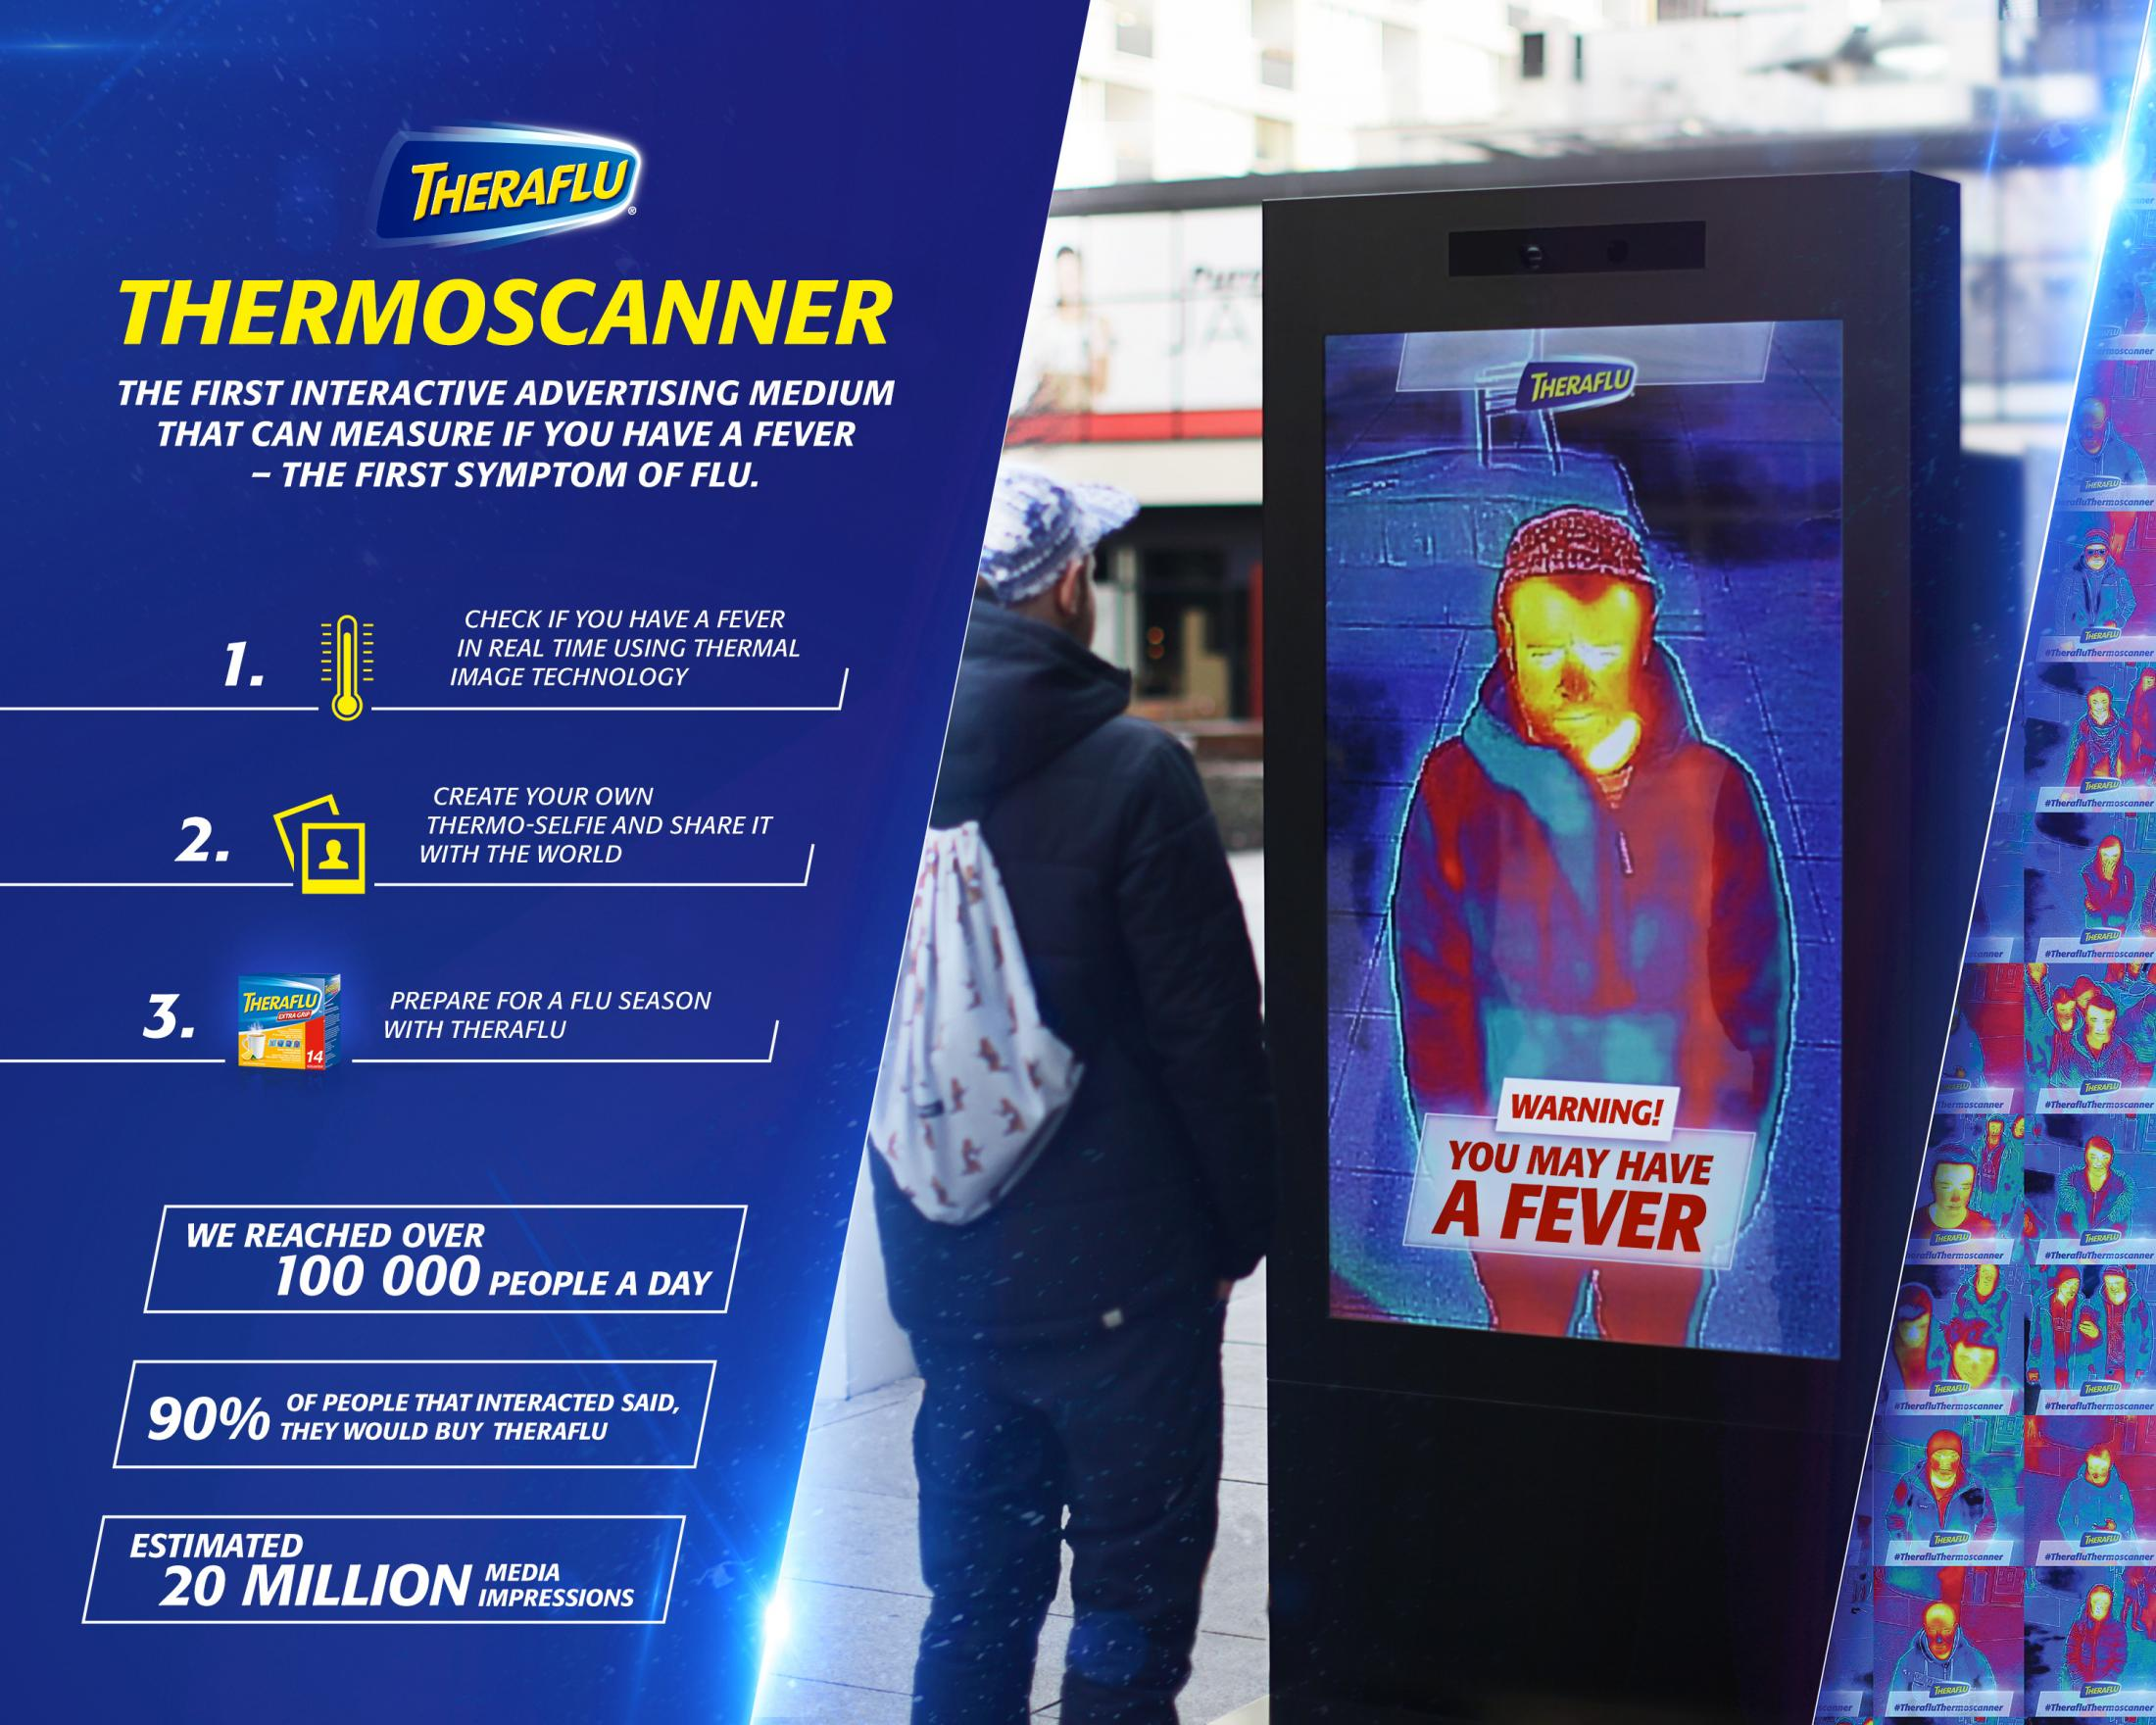 Thumbnail for Theraflu Thermoscanner